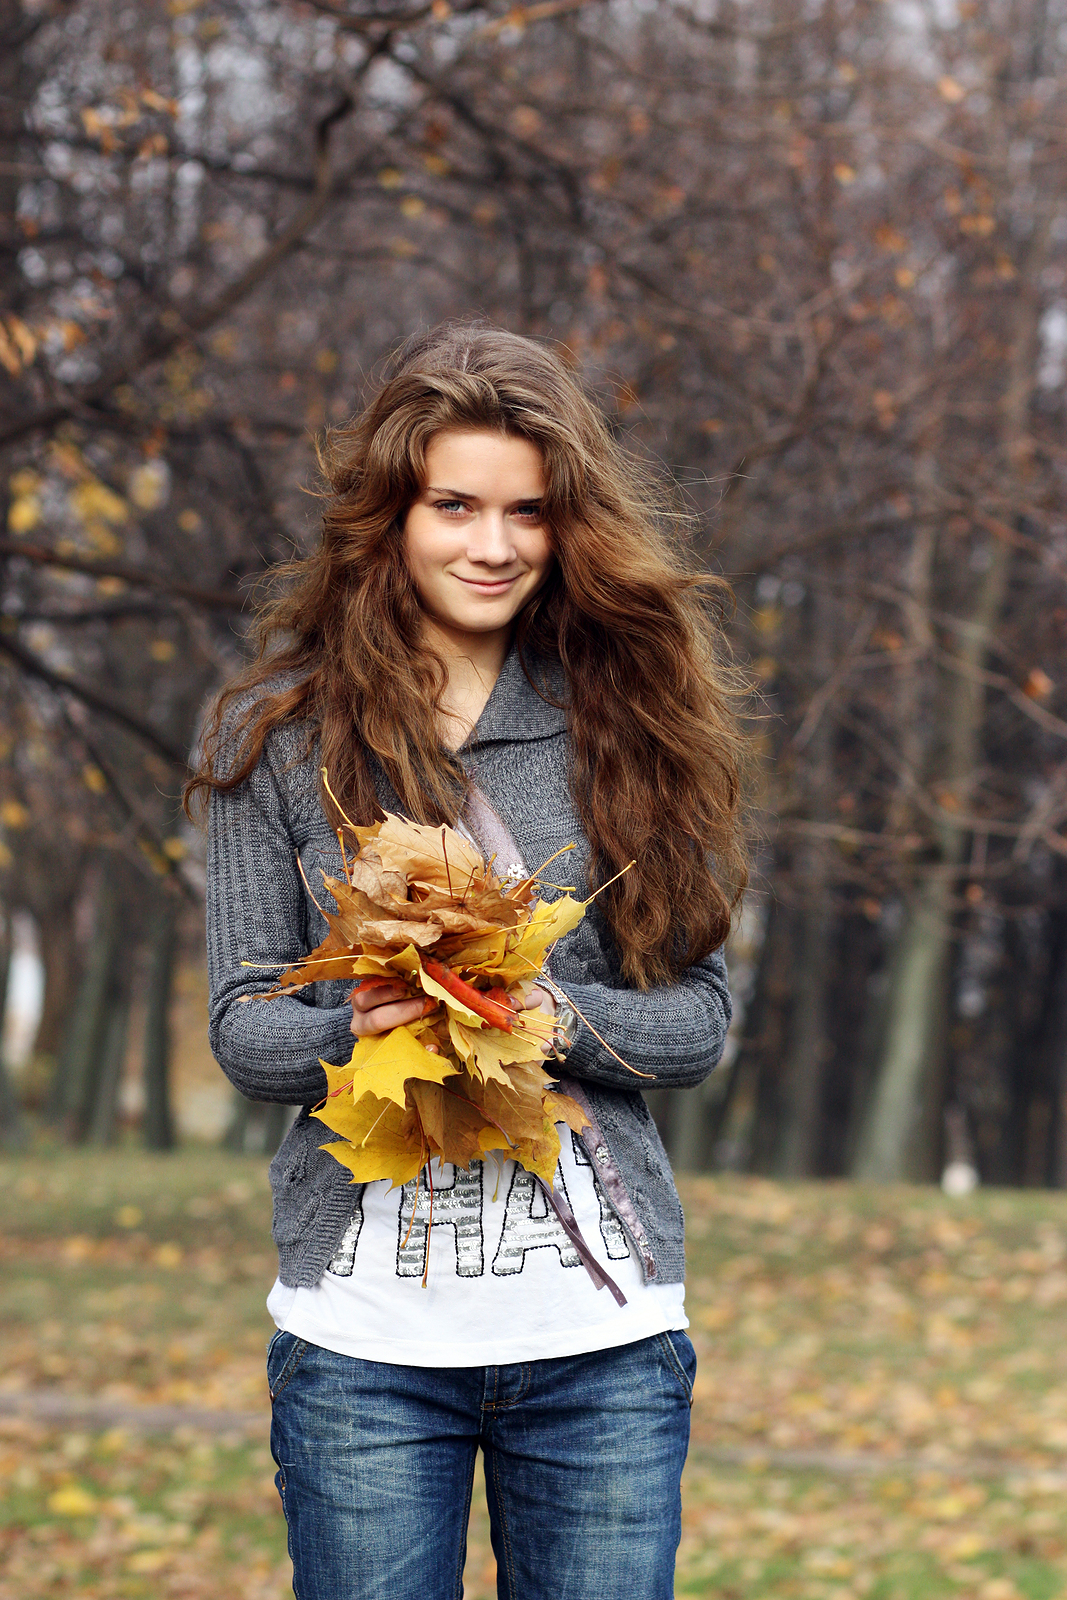 fall-hair-tips-thoughts-of-an-image-artist-regarding-fall-hair-colors-fall-hair-colors